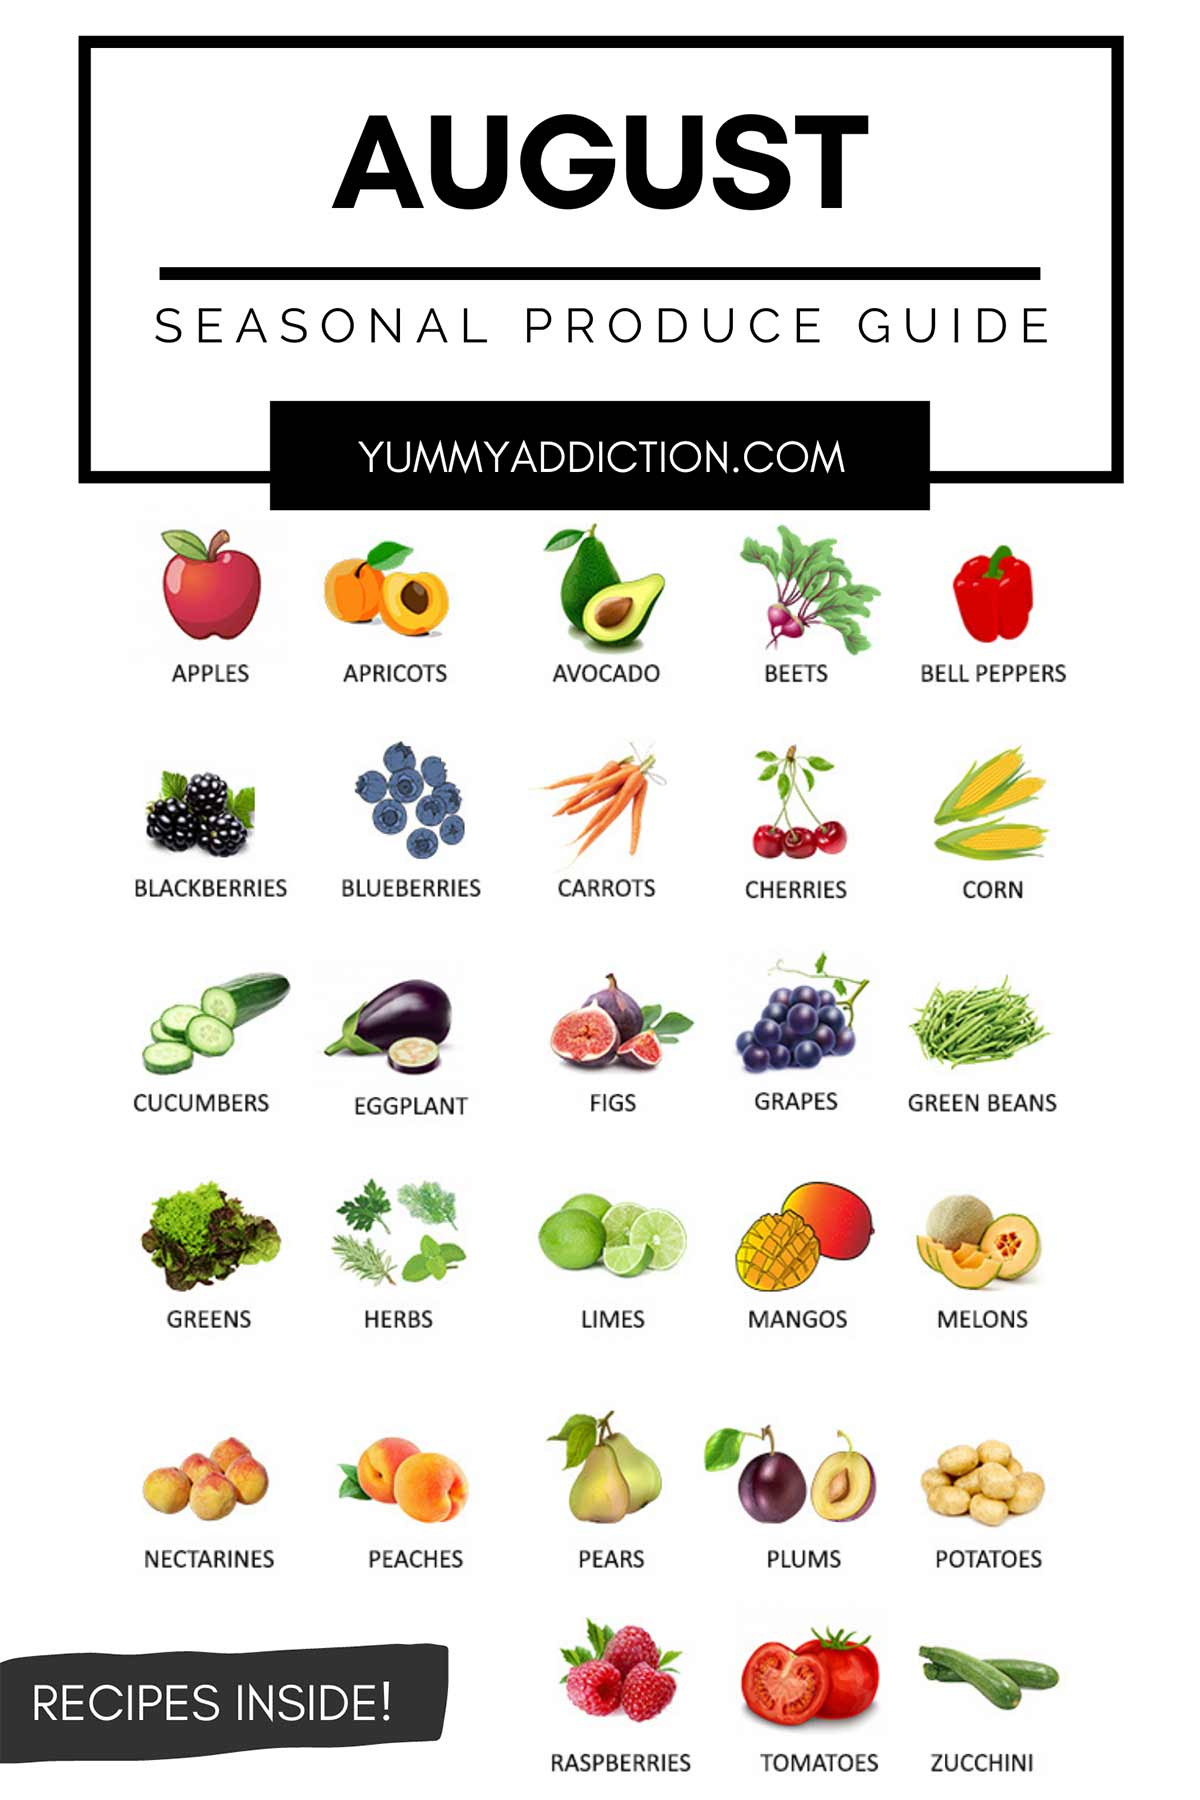 Vegetables and fruits in season in August